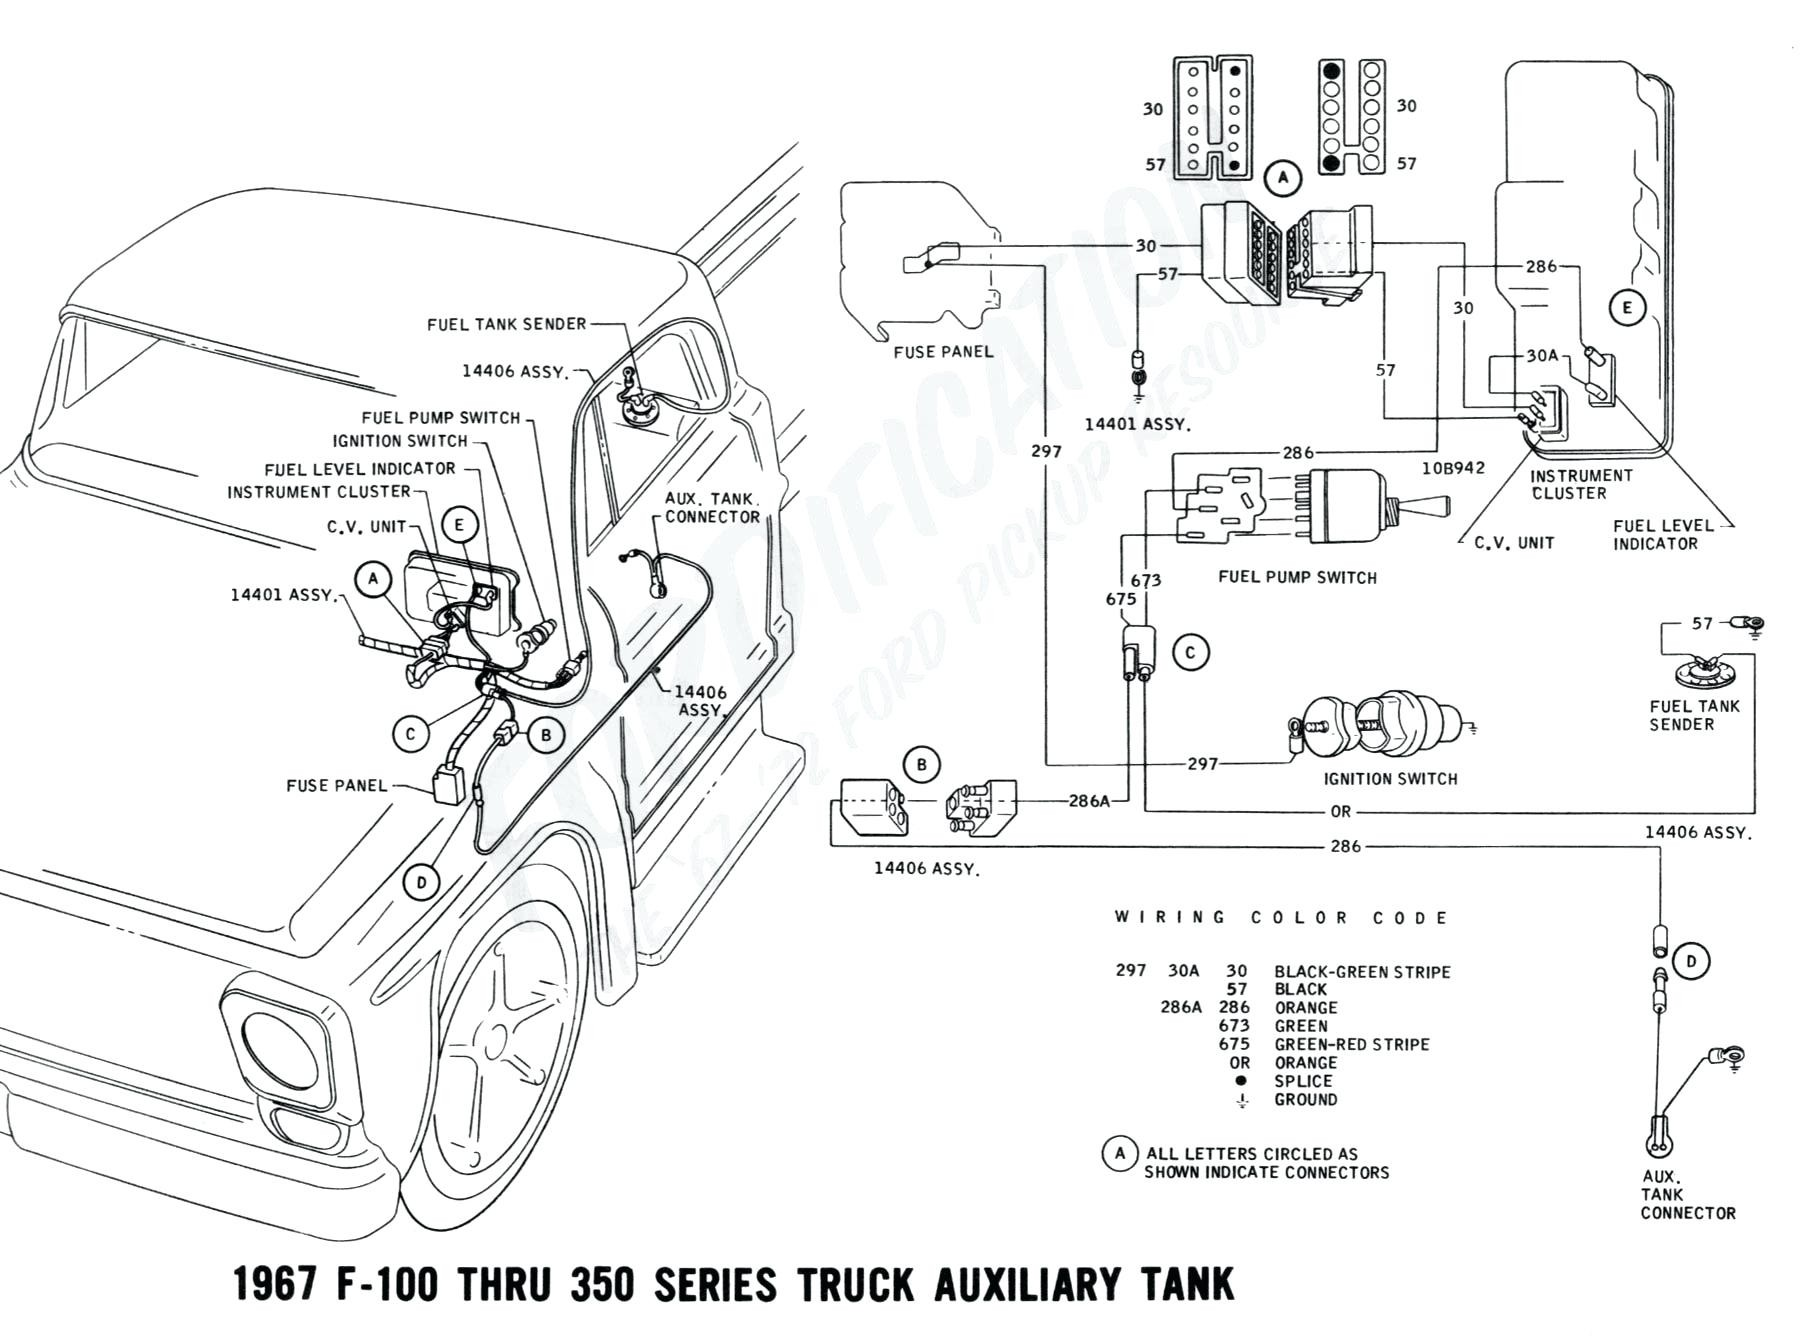 Diagram Toyota Pickup Fuel Line Diagram Toyota 4runner Fuel Pump